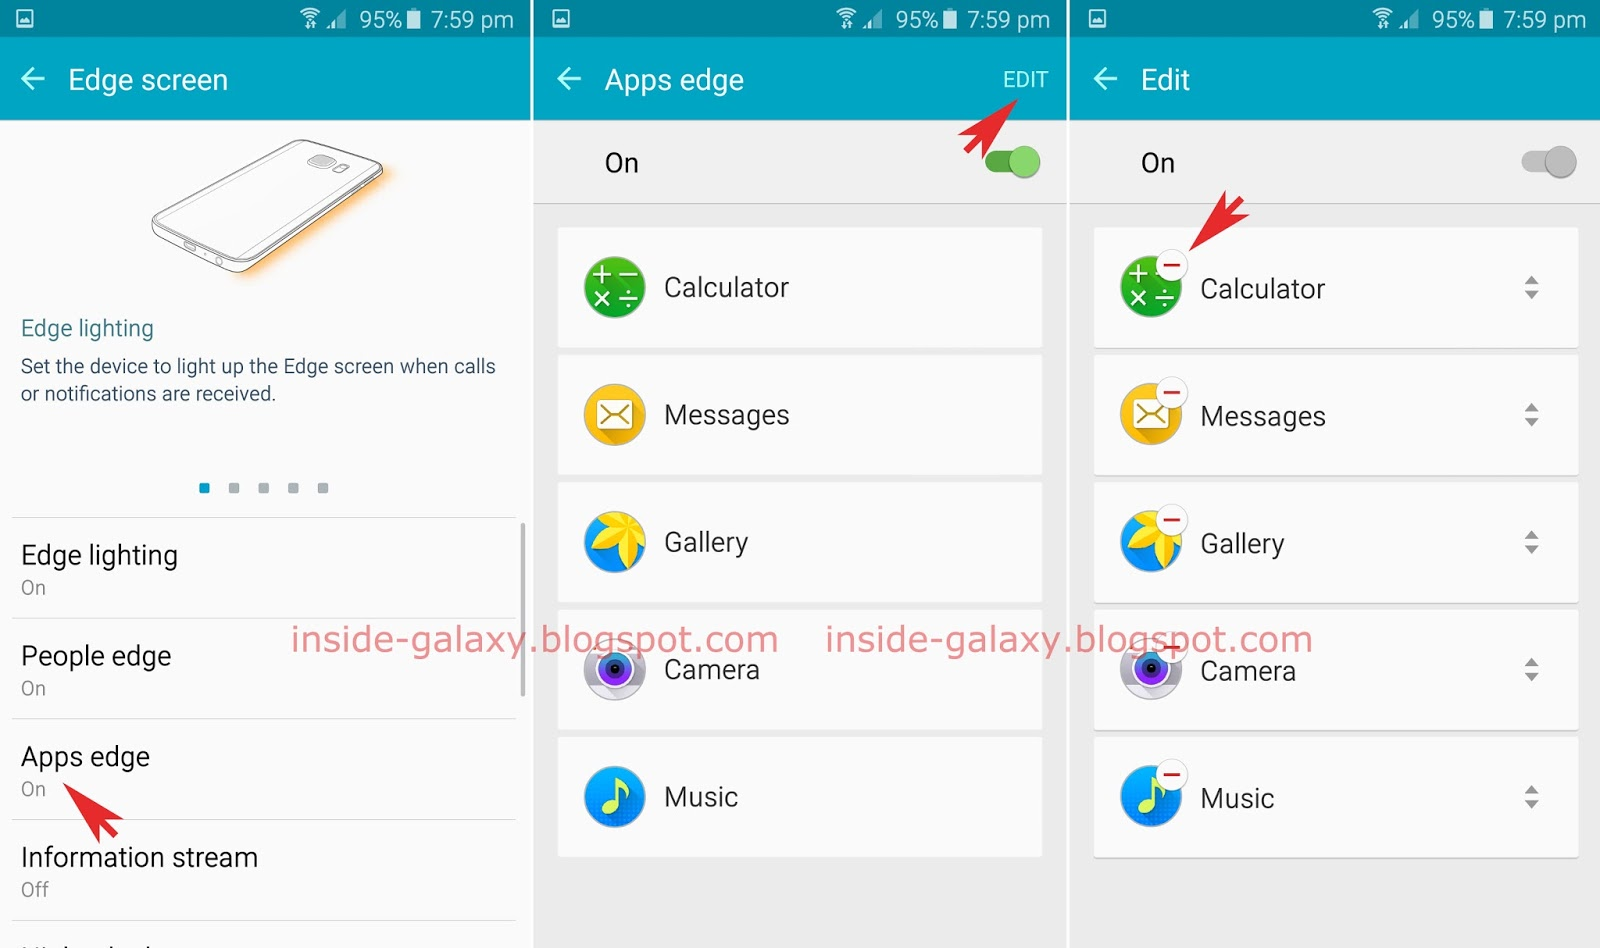 How To Delete Or Reorder Apps In The Apps Edge Feature? You Can Do So By  Using Two Different Methods: From The Settings Menu And From The Edge  Screen